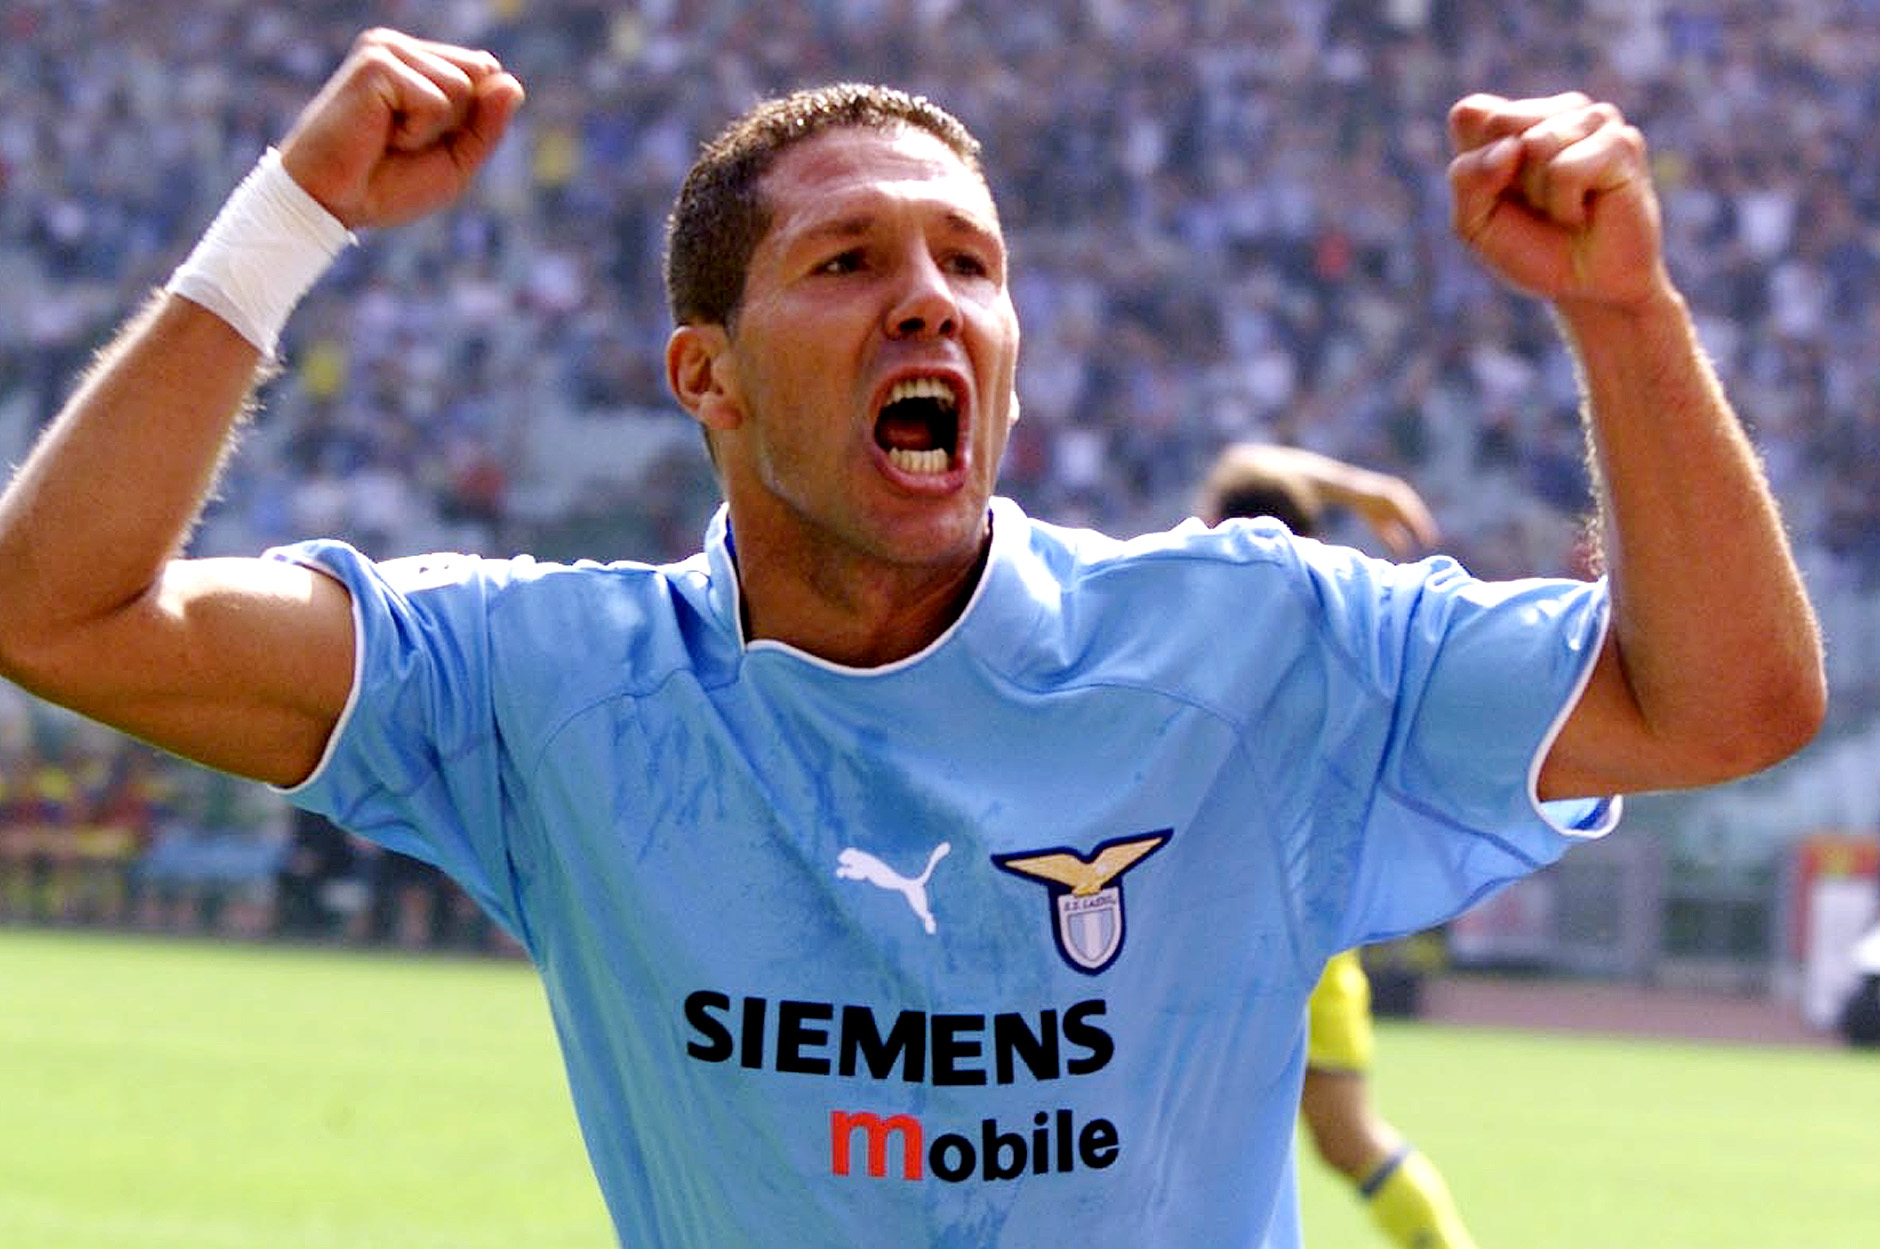 Lazio's Argentine midfielder Diego Simeone celebrates after scoring the first goal for his team during Italian major league soccer match against Chievo at the Olympic stadium in Rome Sunday, Sept. 15, 2002. Chievo won 3-2. (AP Photo/Giuseppe Calzuola)